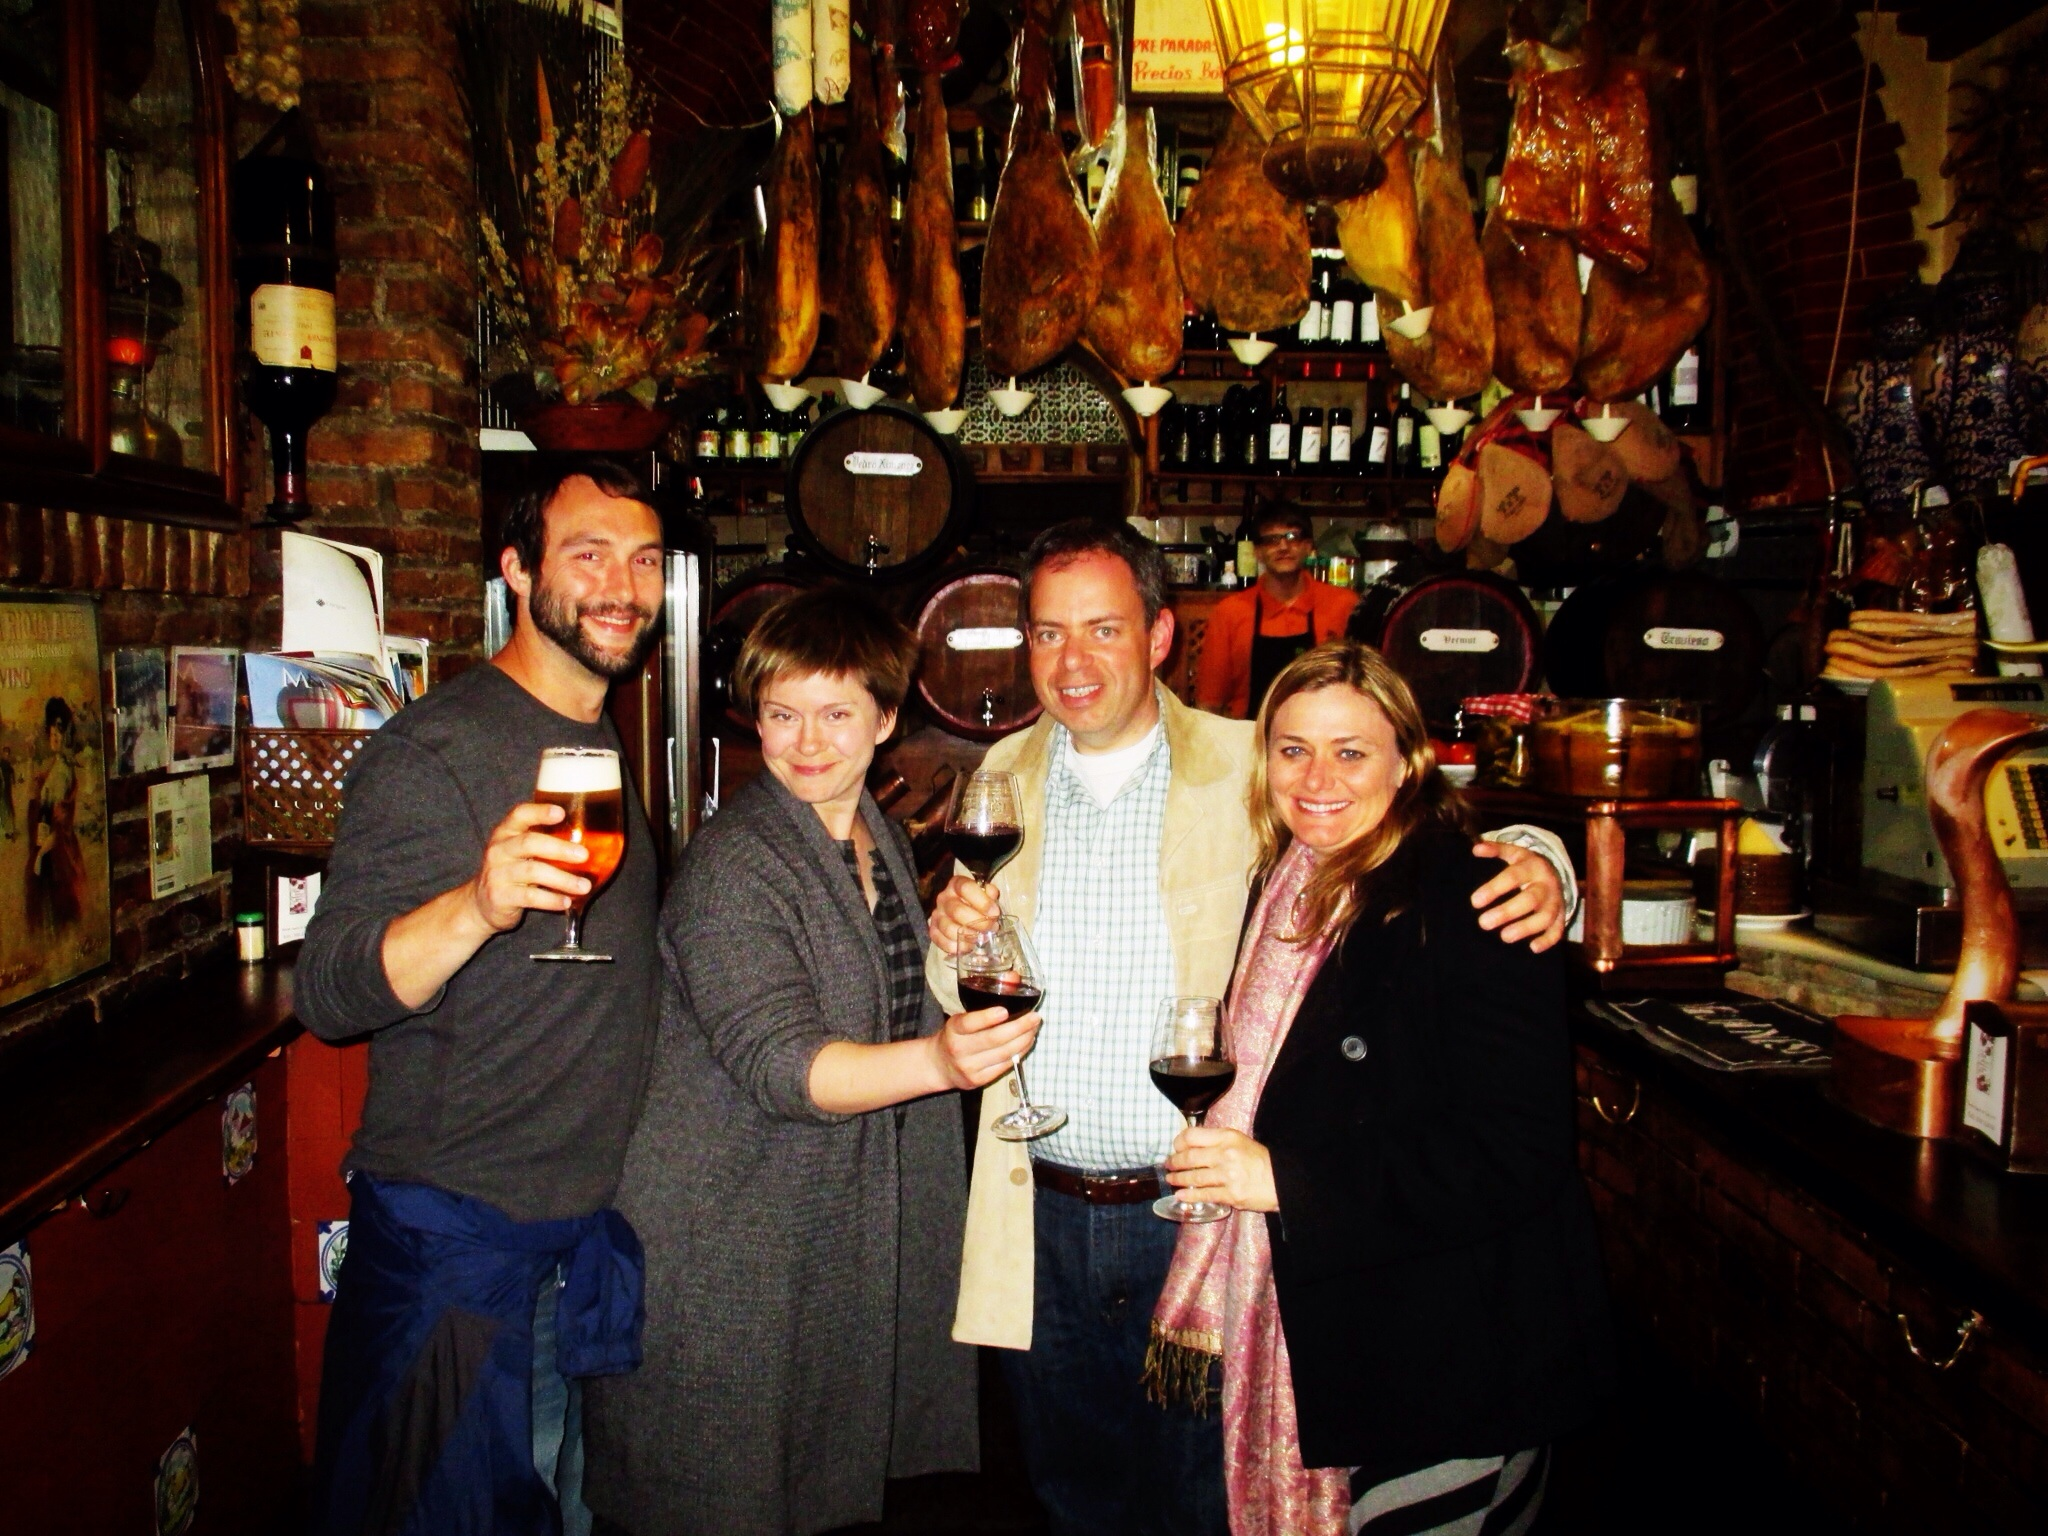 Toasting with our new friends at the last tapas bar of the night in Granada